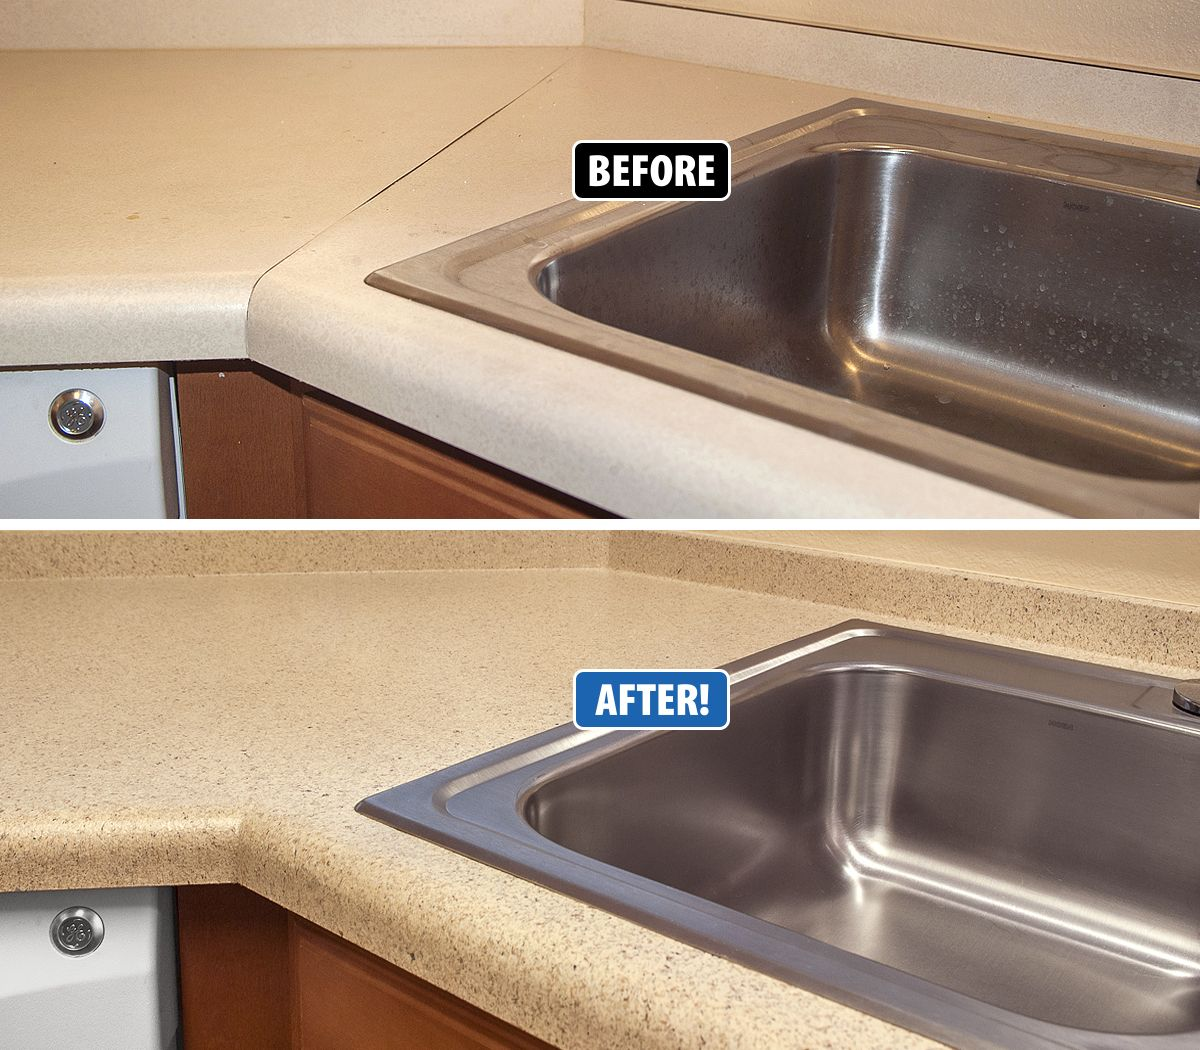 Miracle Method Can Refinish Countertops To Look Brand New Without